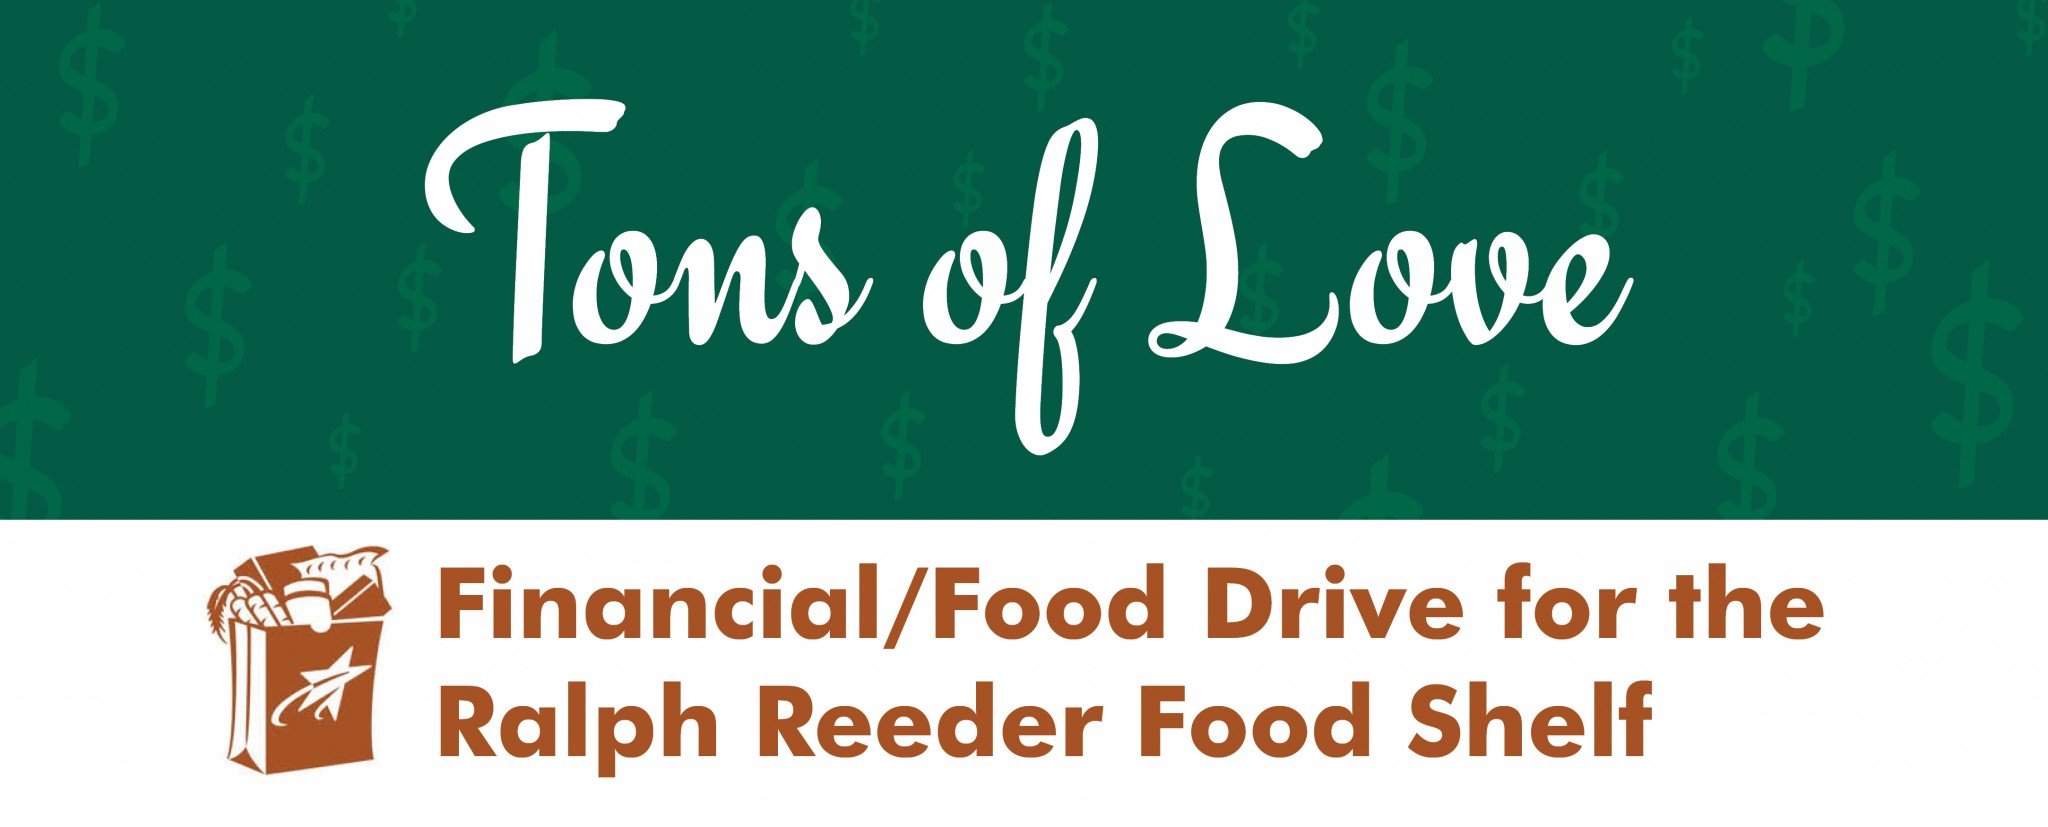 Tons of Love Financial Drive